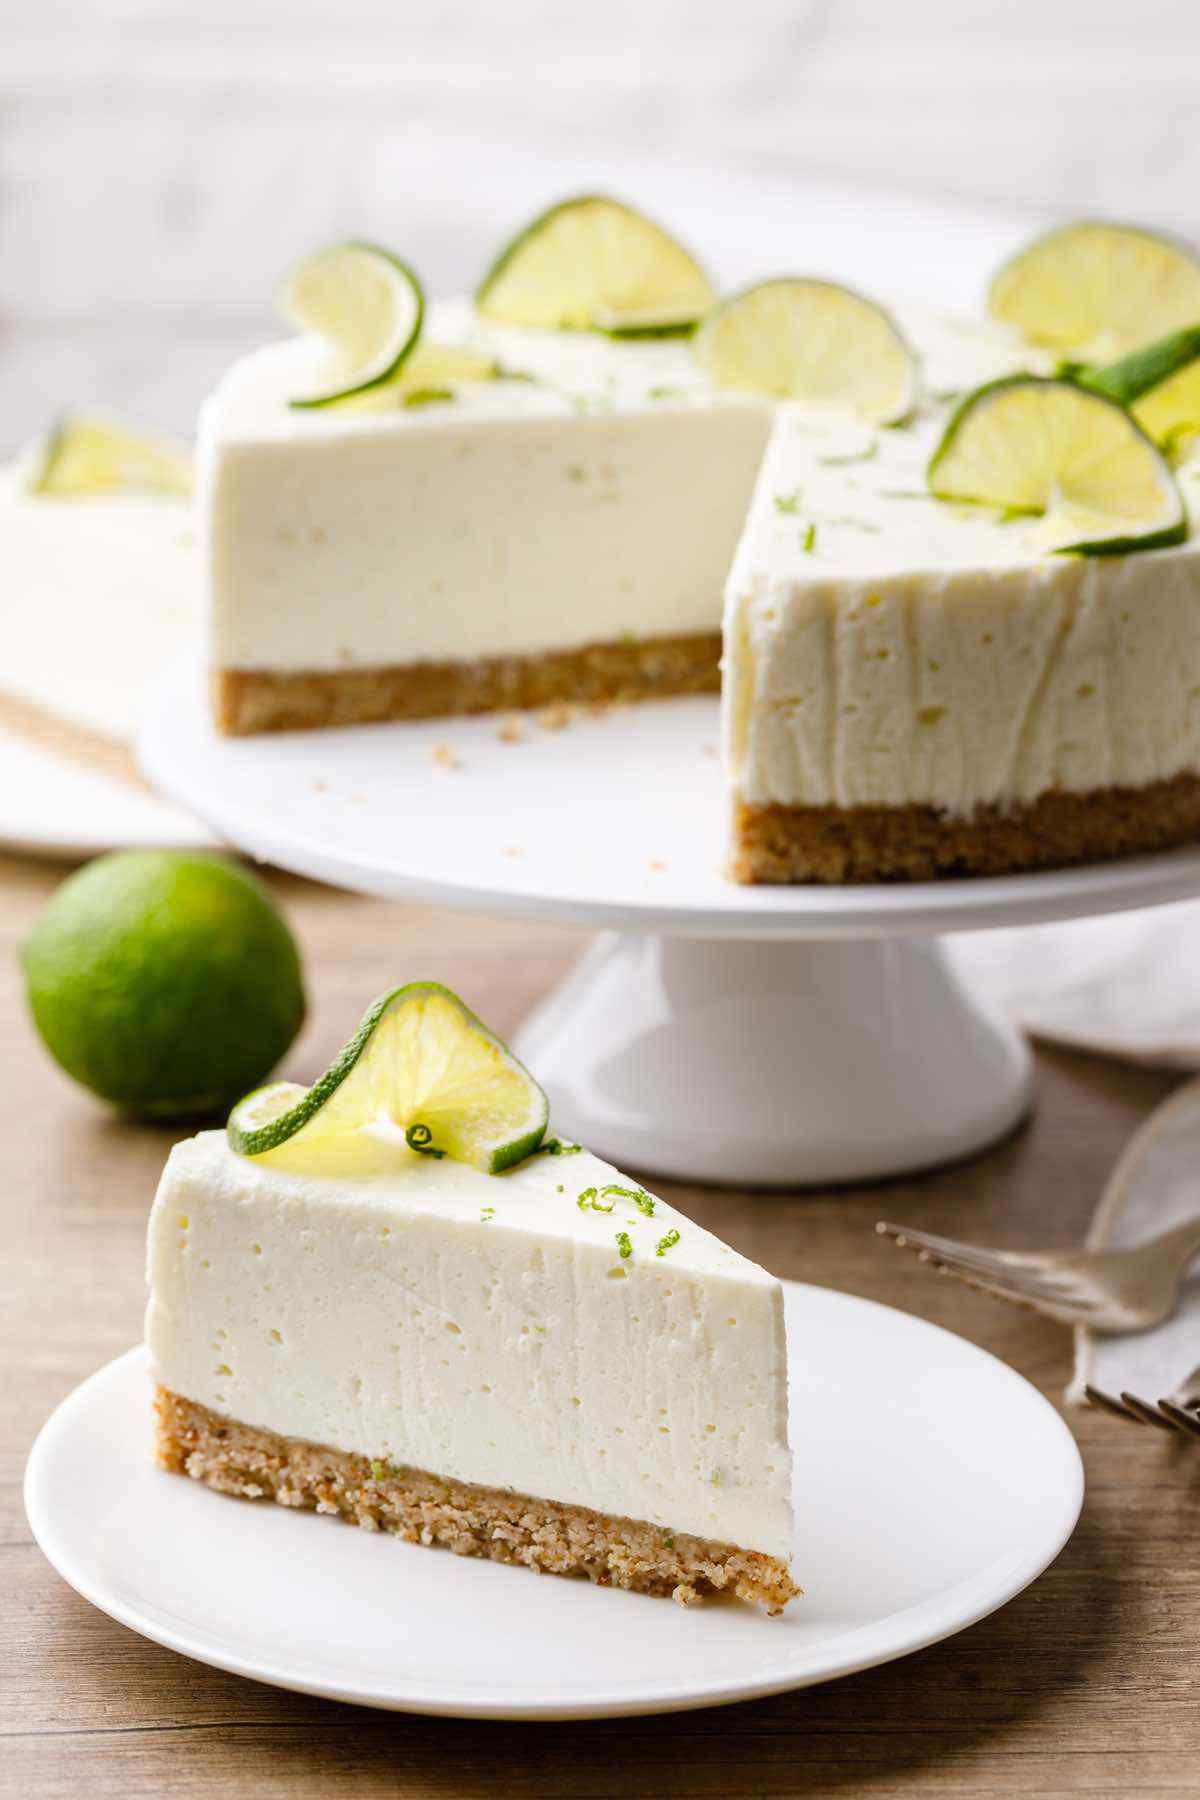 on a cake plate is a lime cheesecake with a portion taken out. on a plate below is one slice of the cheesecake with lime twist on top